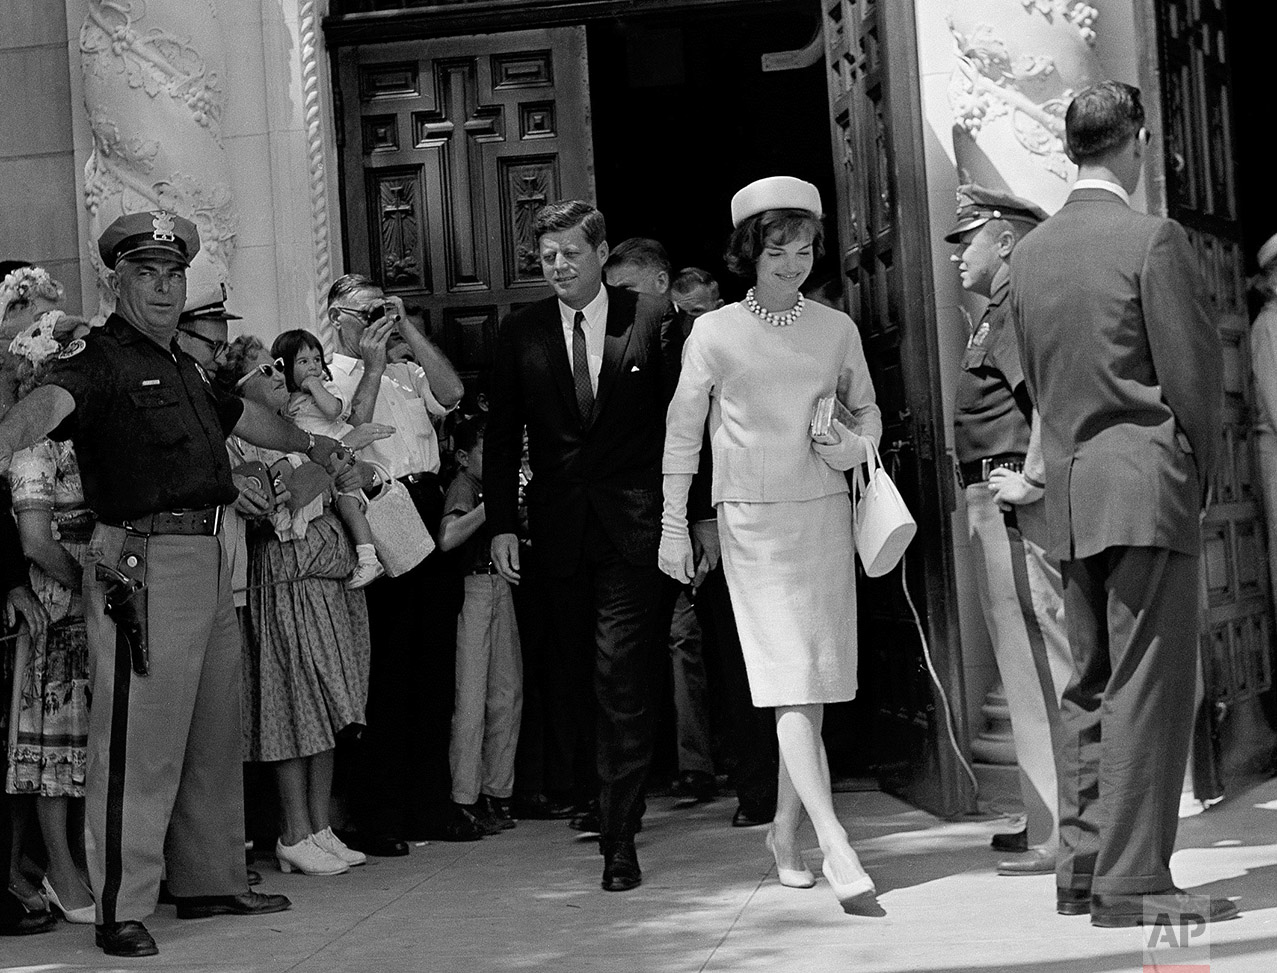 President John F. Kennedy and first lady Jacqueline Kennedy leave St. Edward's Catholic Church in Palm Beach, Fla., after attending Easter Sunday services, April 2, 1961. At left, a policeman stands in front of part of crowd that gathered to see the president and first lady who, with a reported plot threatening them and their family, were guarded by extra secret service detail. Mrs. Kennedy is wearing a pale blue two-piece shantung silk dress and matching pillbox hat. Shoes, handbag and gloves are beige. Kennedy is wearing a navy pin-striped suit. (AP Photo)